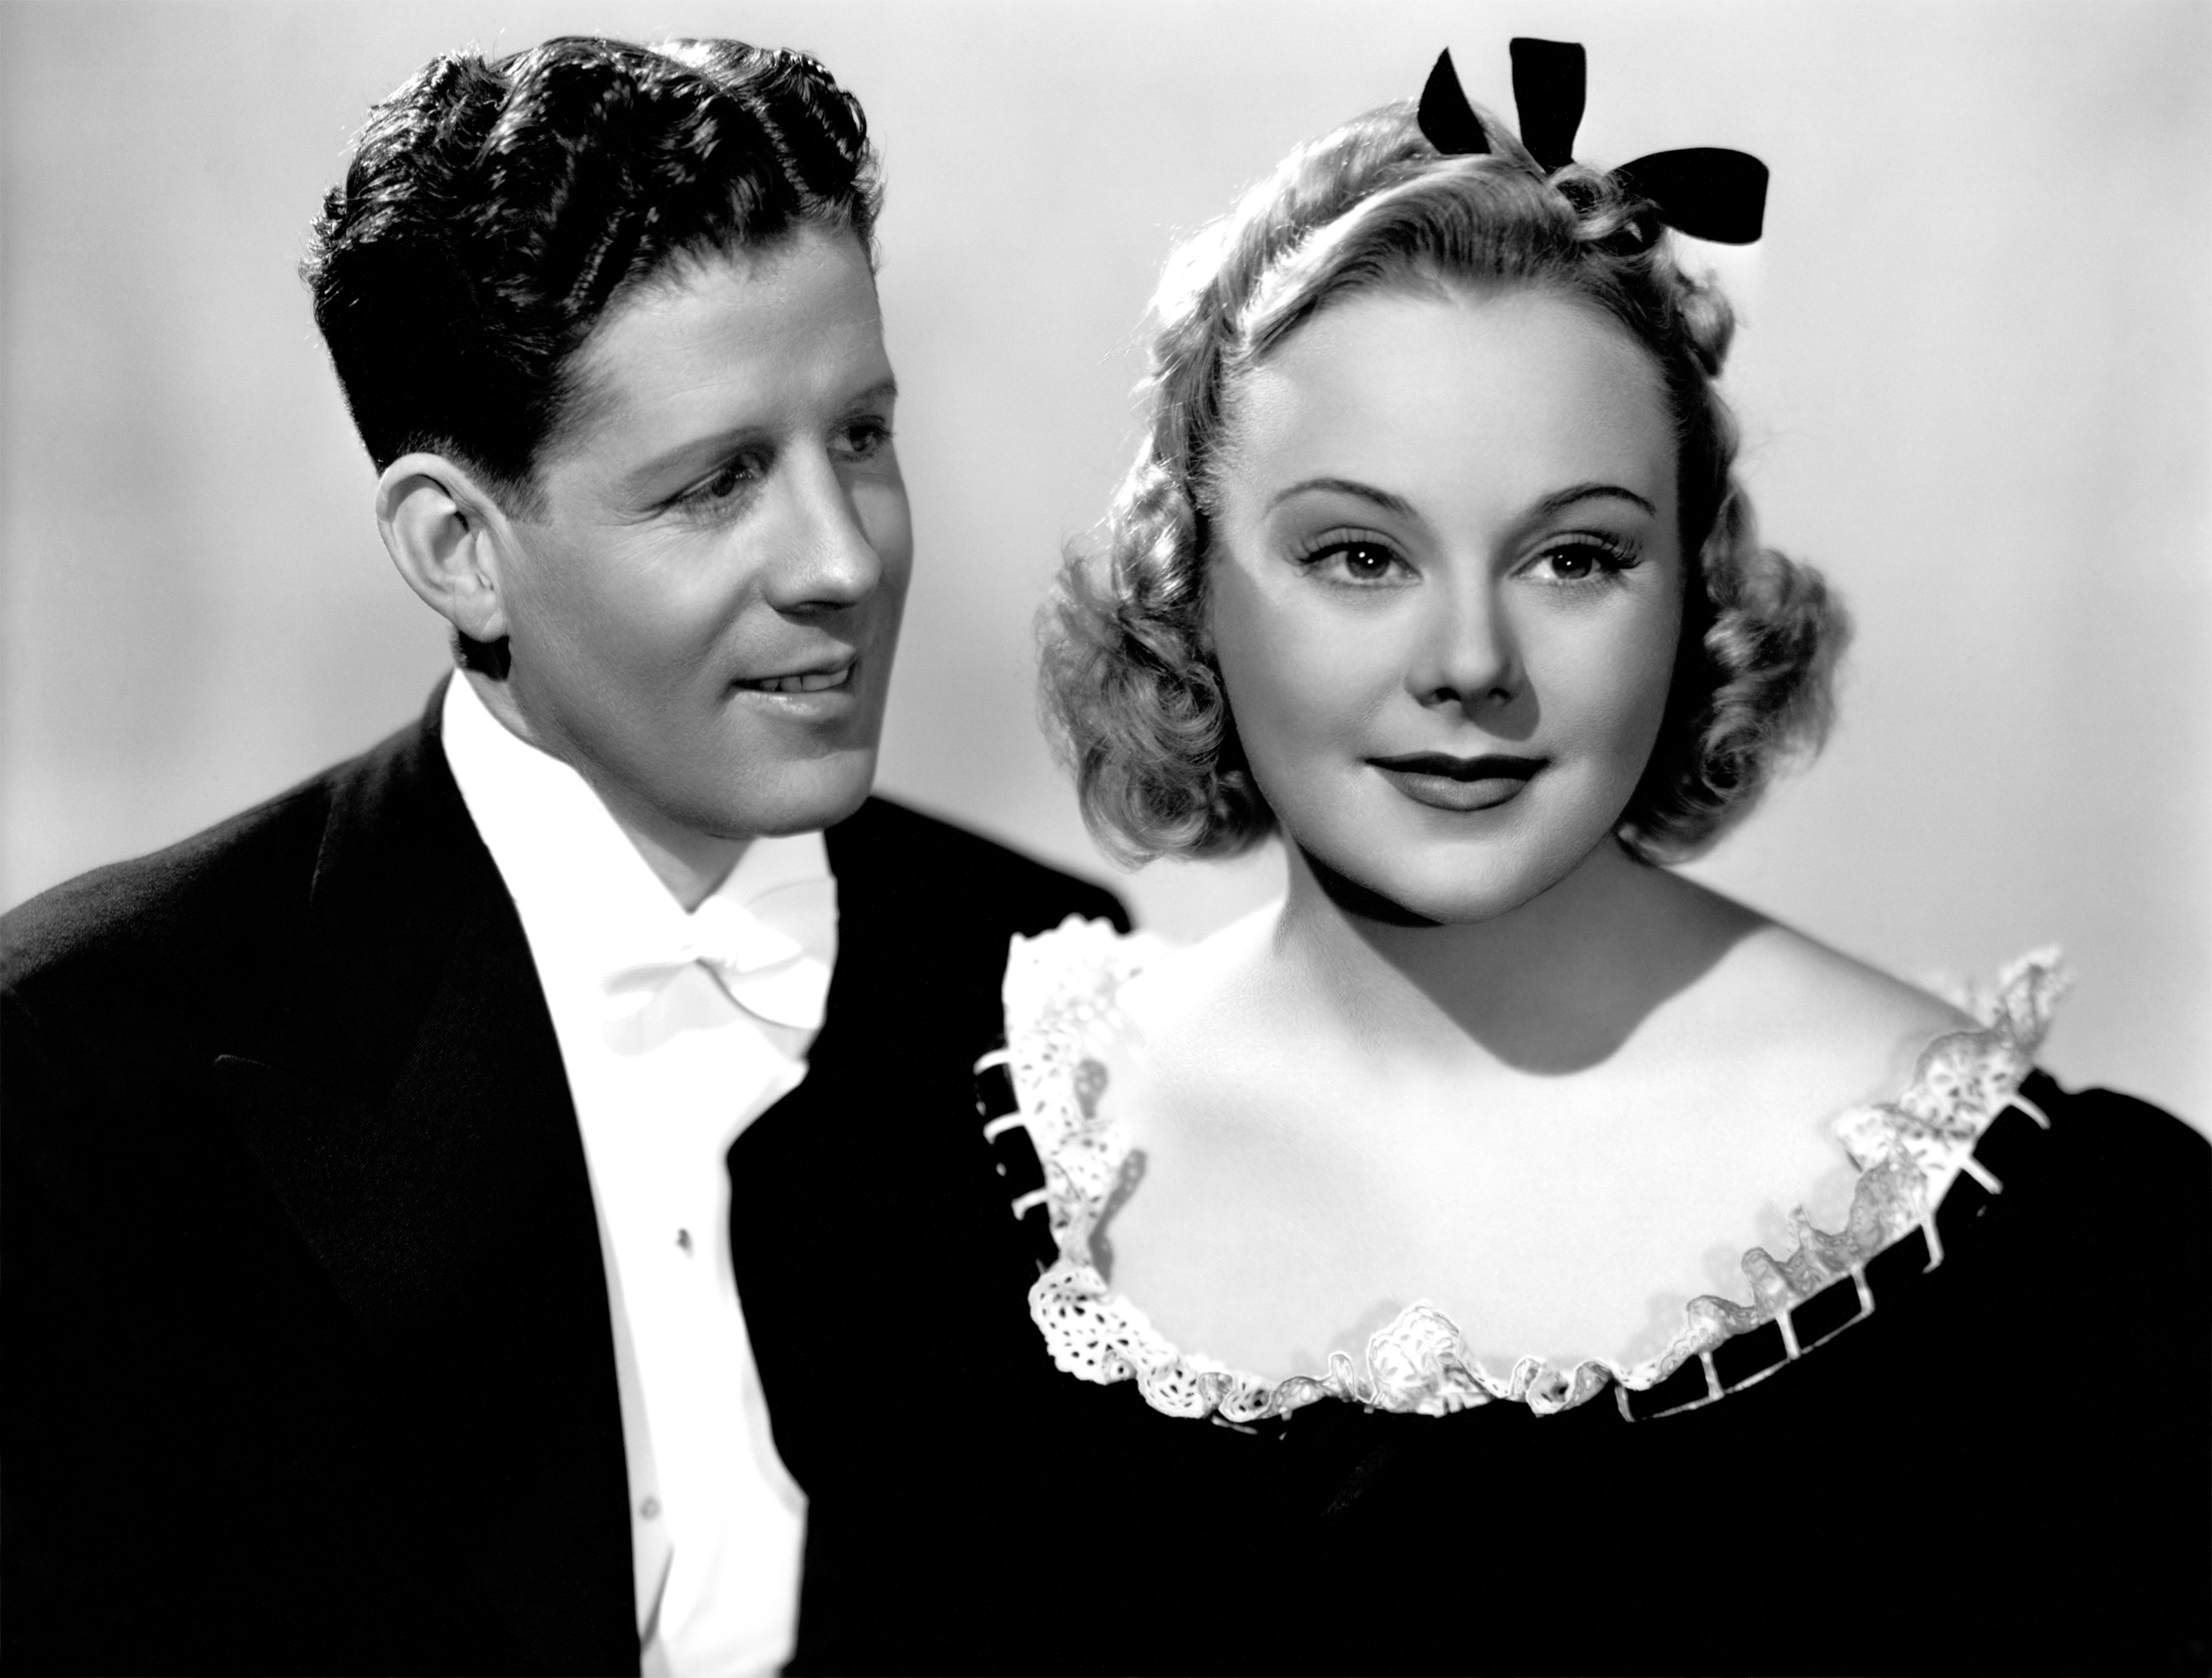 Sonja Henie in Second Fiddle With Rudy Vallee (courtesy of Ricardo)